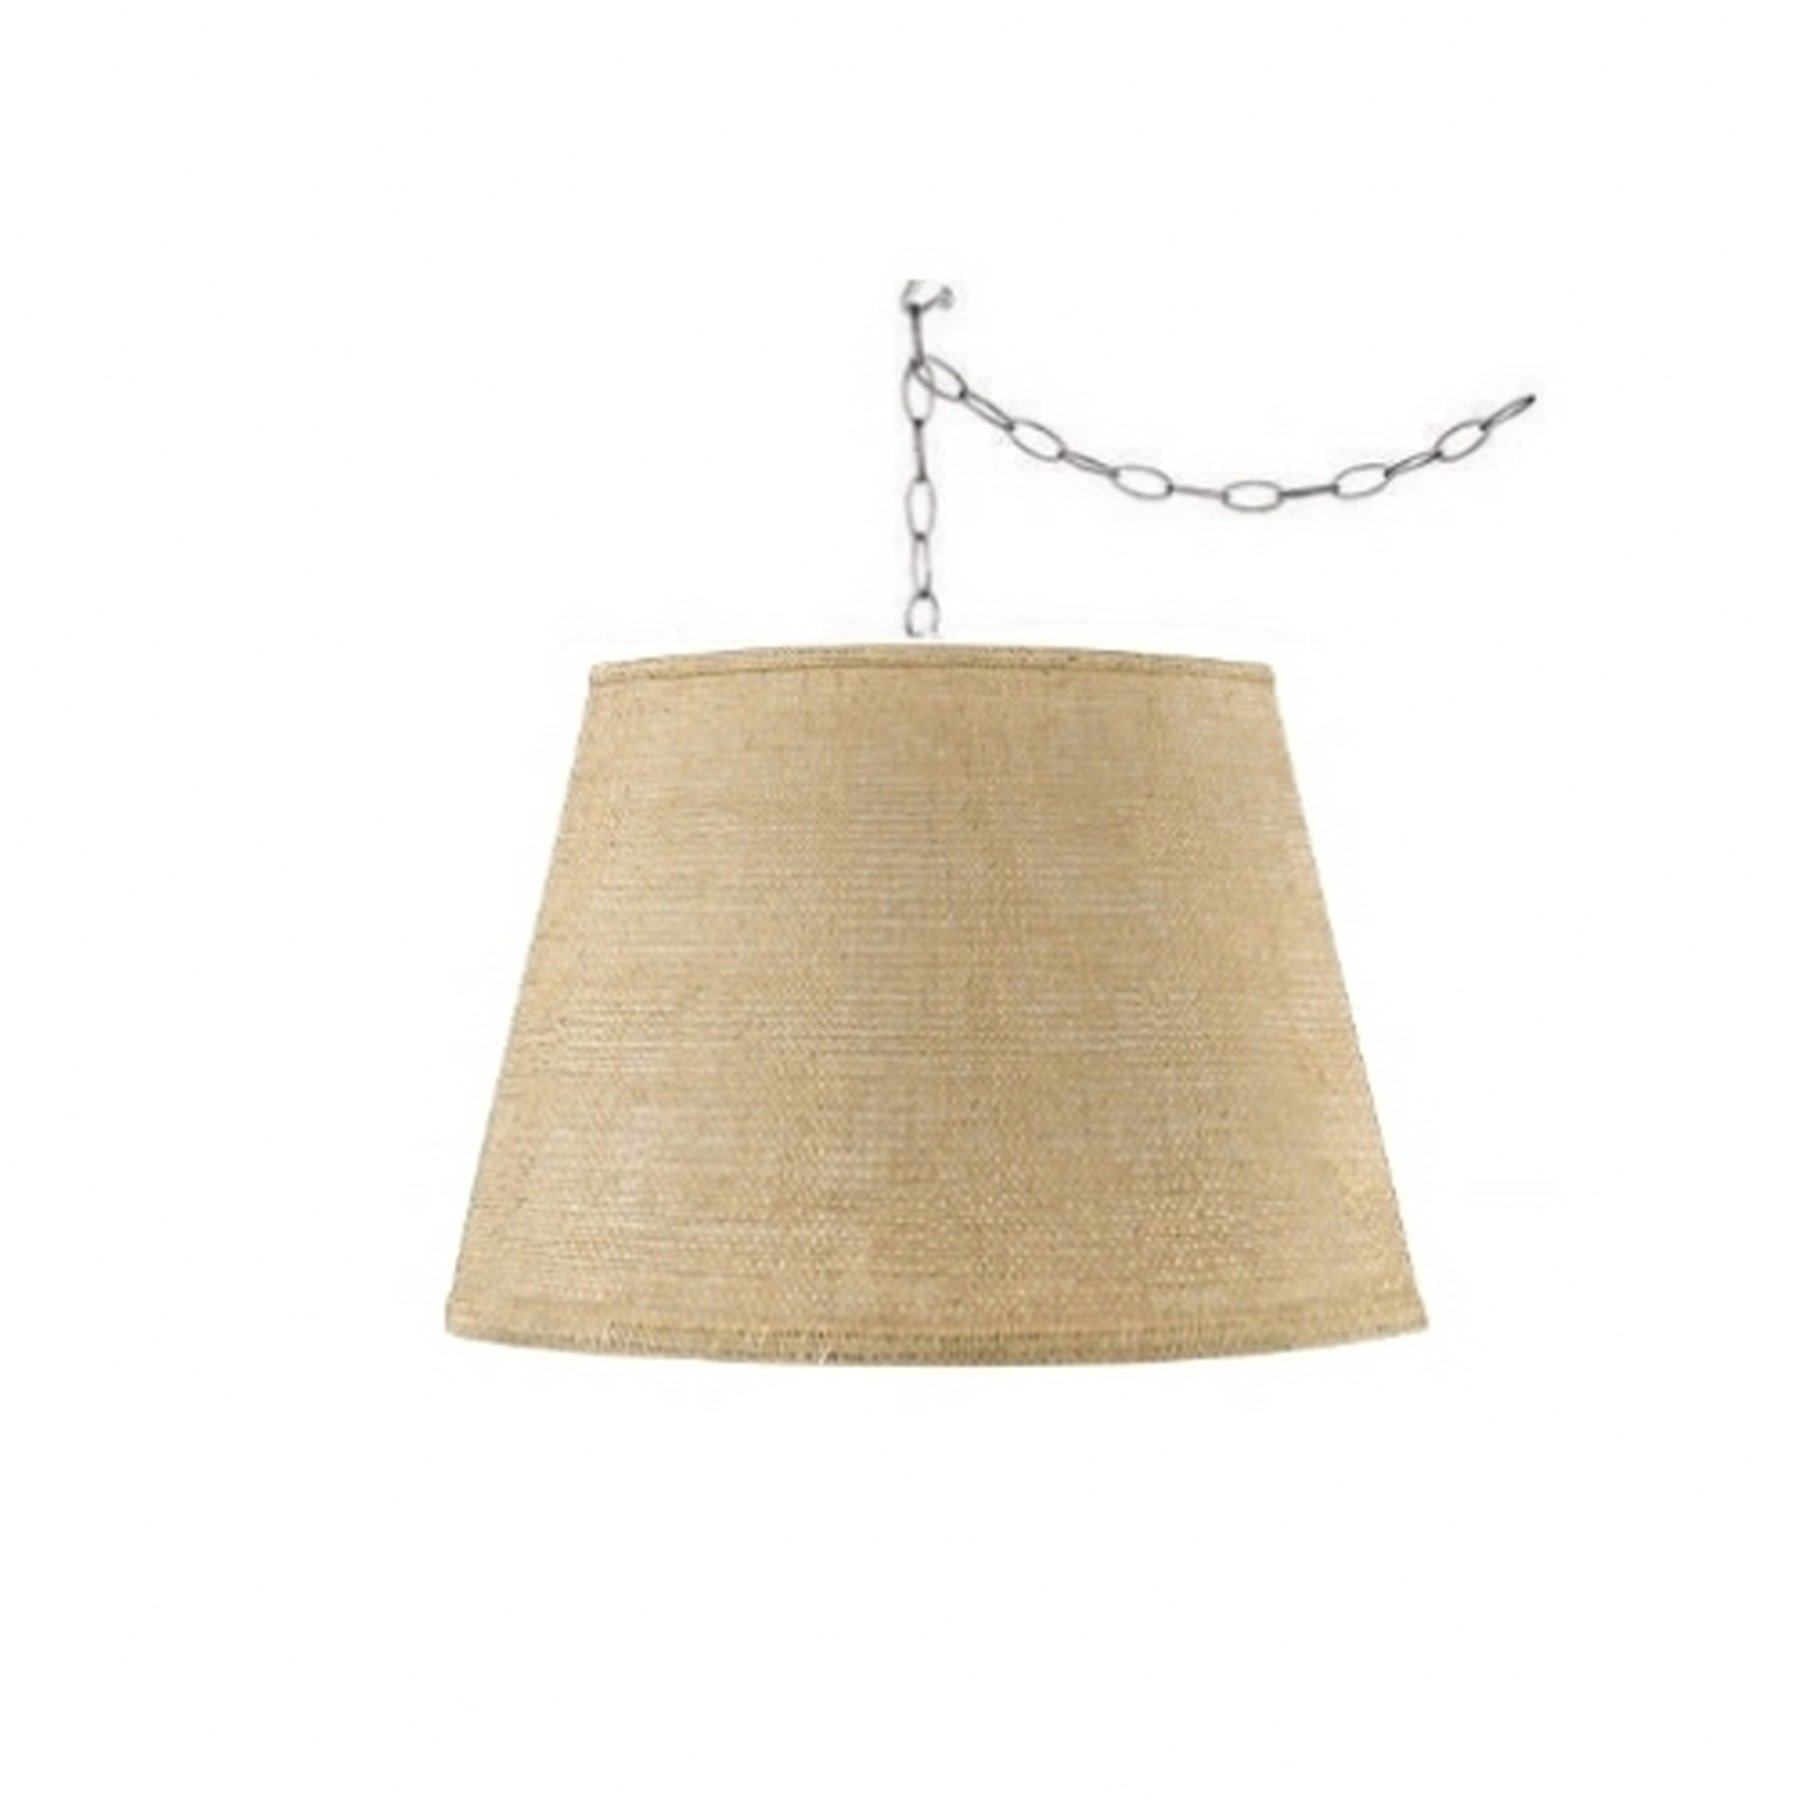 Upgradelights Burlap Swag Lamp Hanging Lighting Fixture Portable Swag Lamp Kit Natural 13x16x11 by Upgradelights